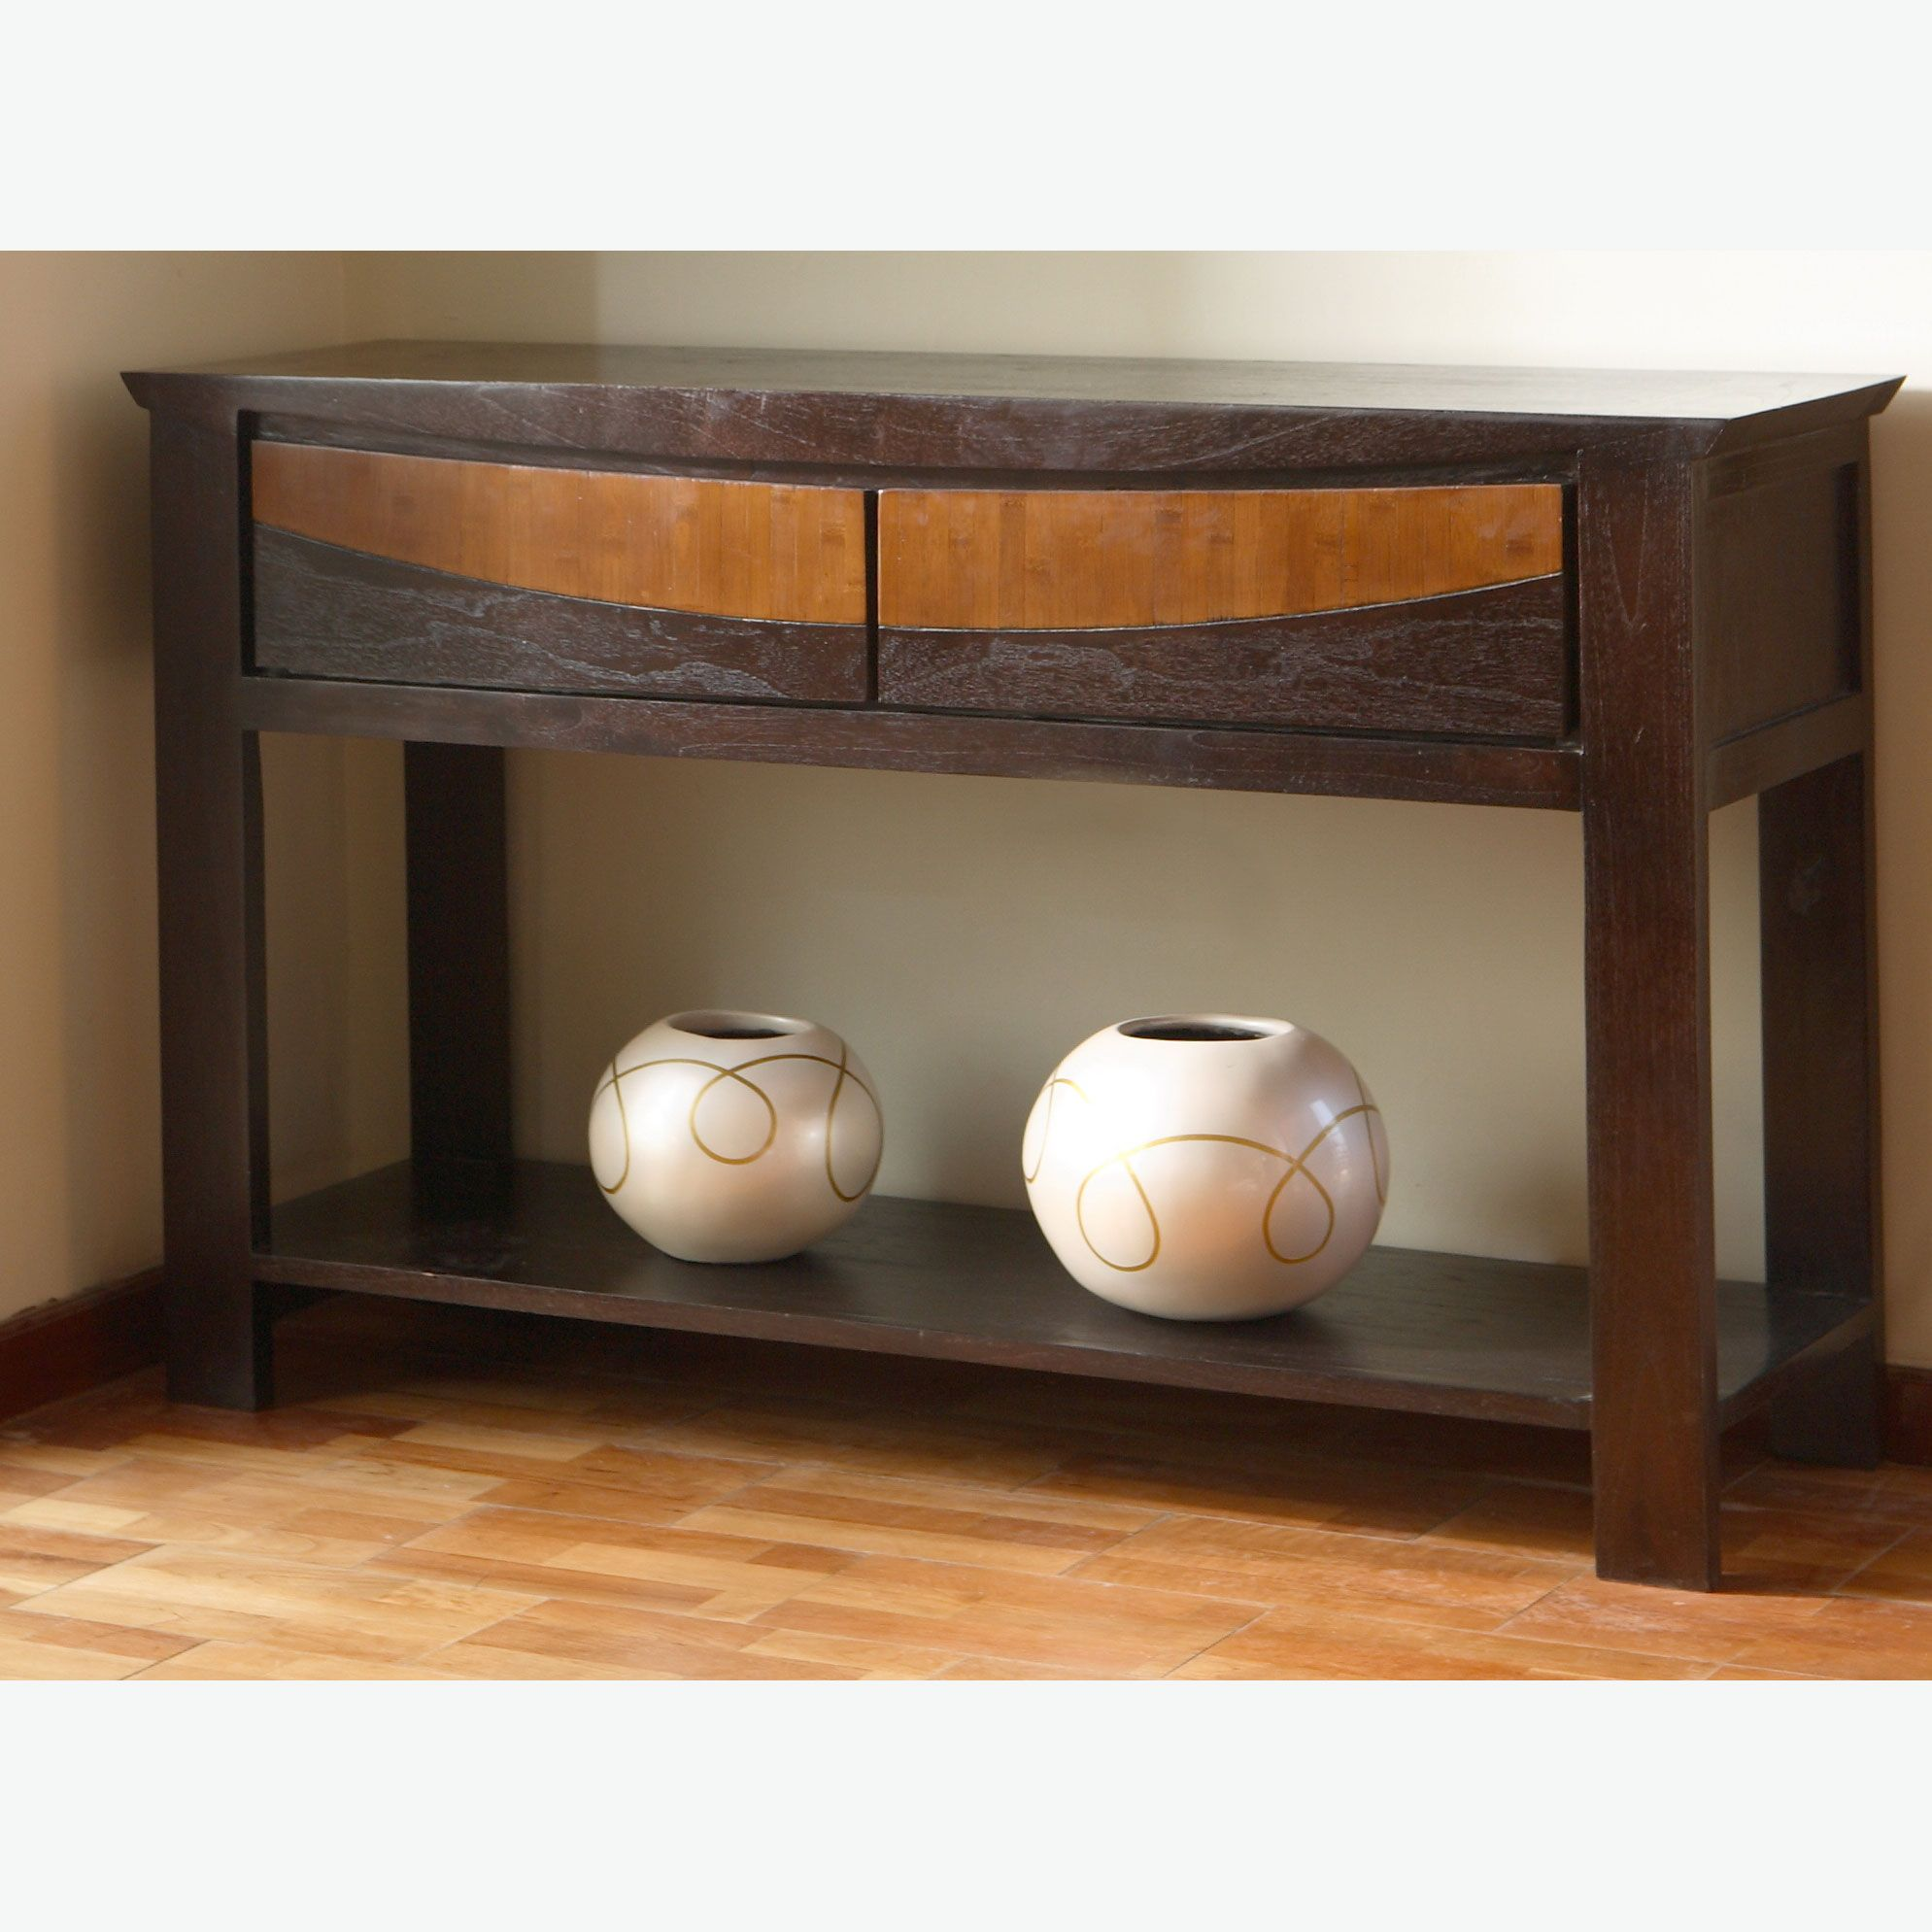 Wooden table furniture design with wooden shelf and drawer wooden table furniture design with wooden shelf and drawer underneath table pinterest wooden shelves geotapseo Gallery